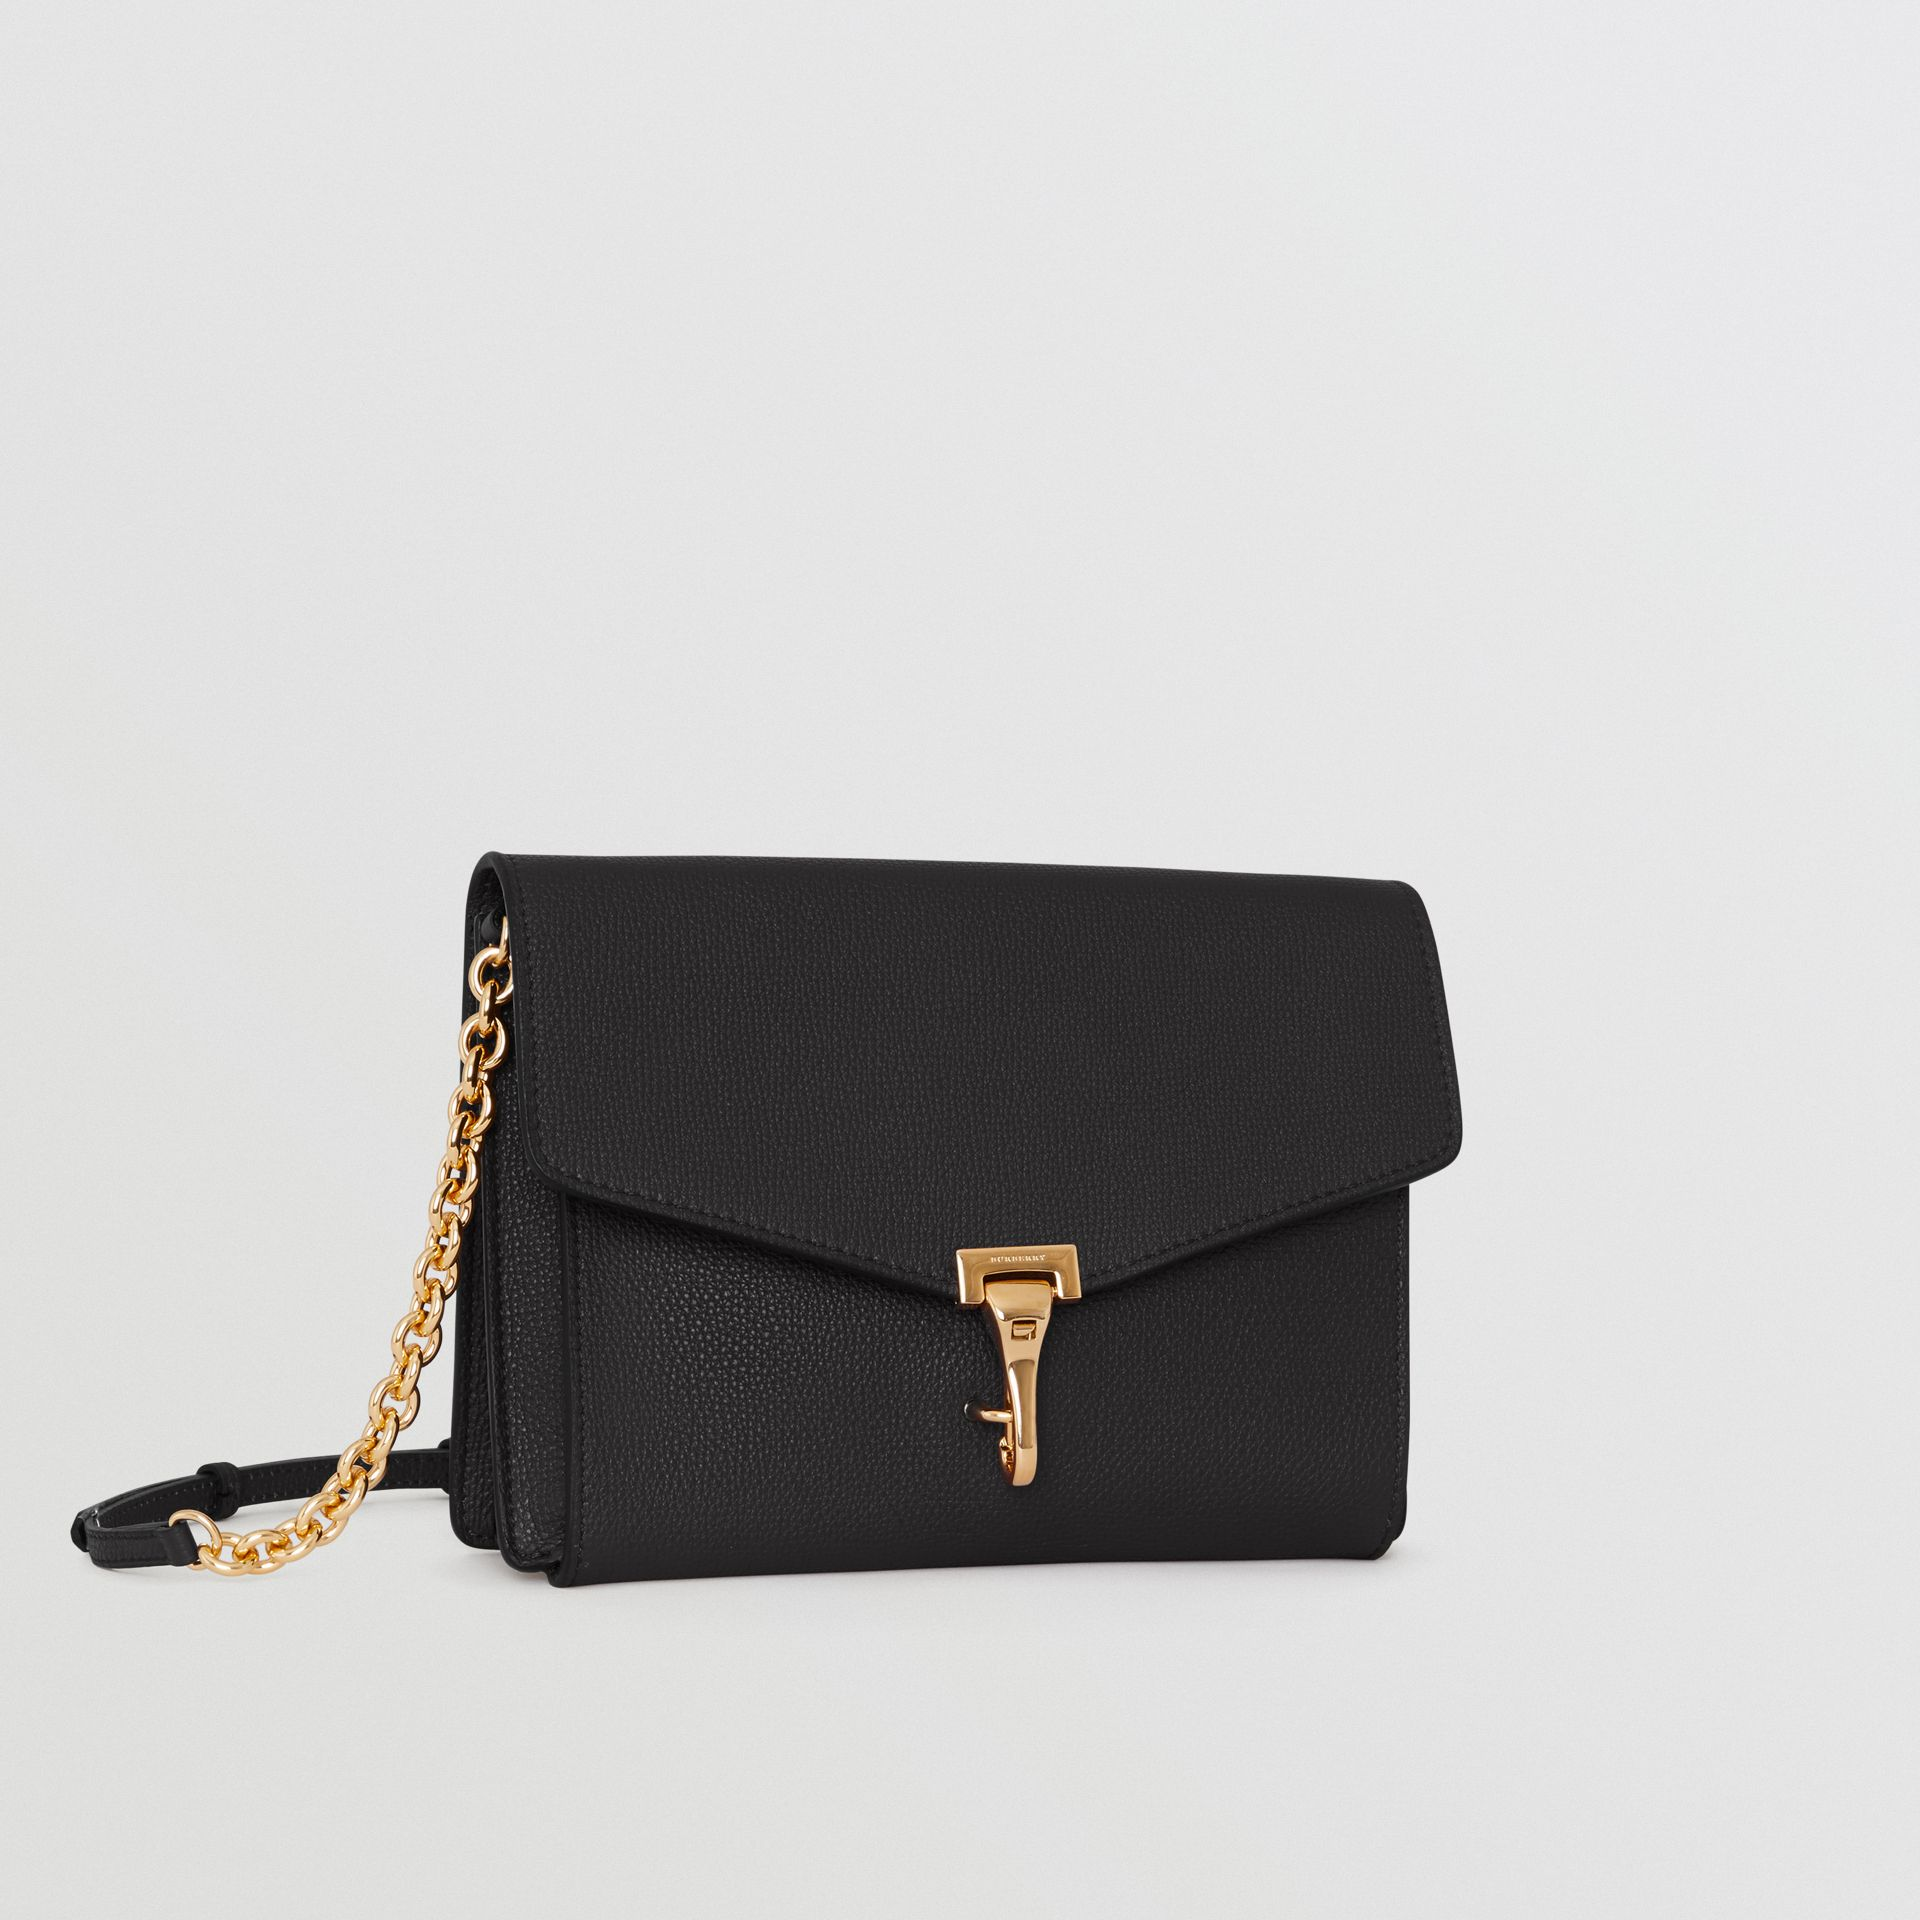 Small Leather Crossbody Bag in Black - Women | Burberry United Kingdom - gallery image 6